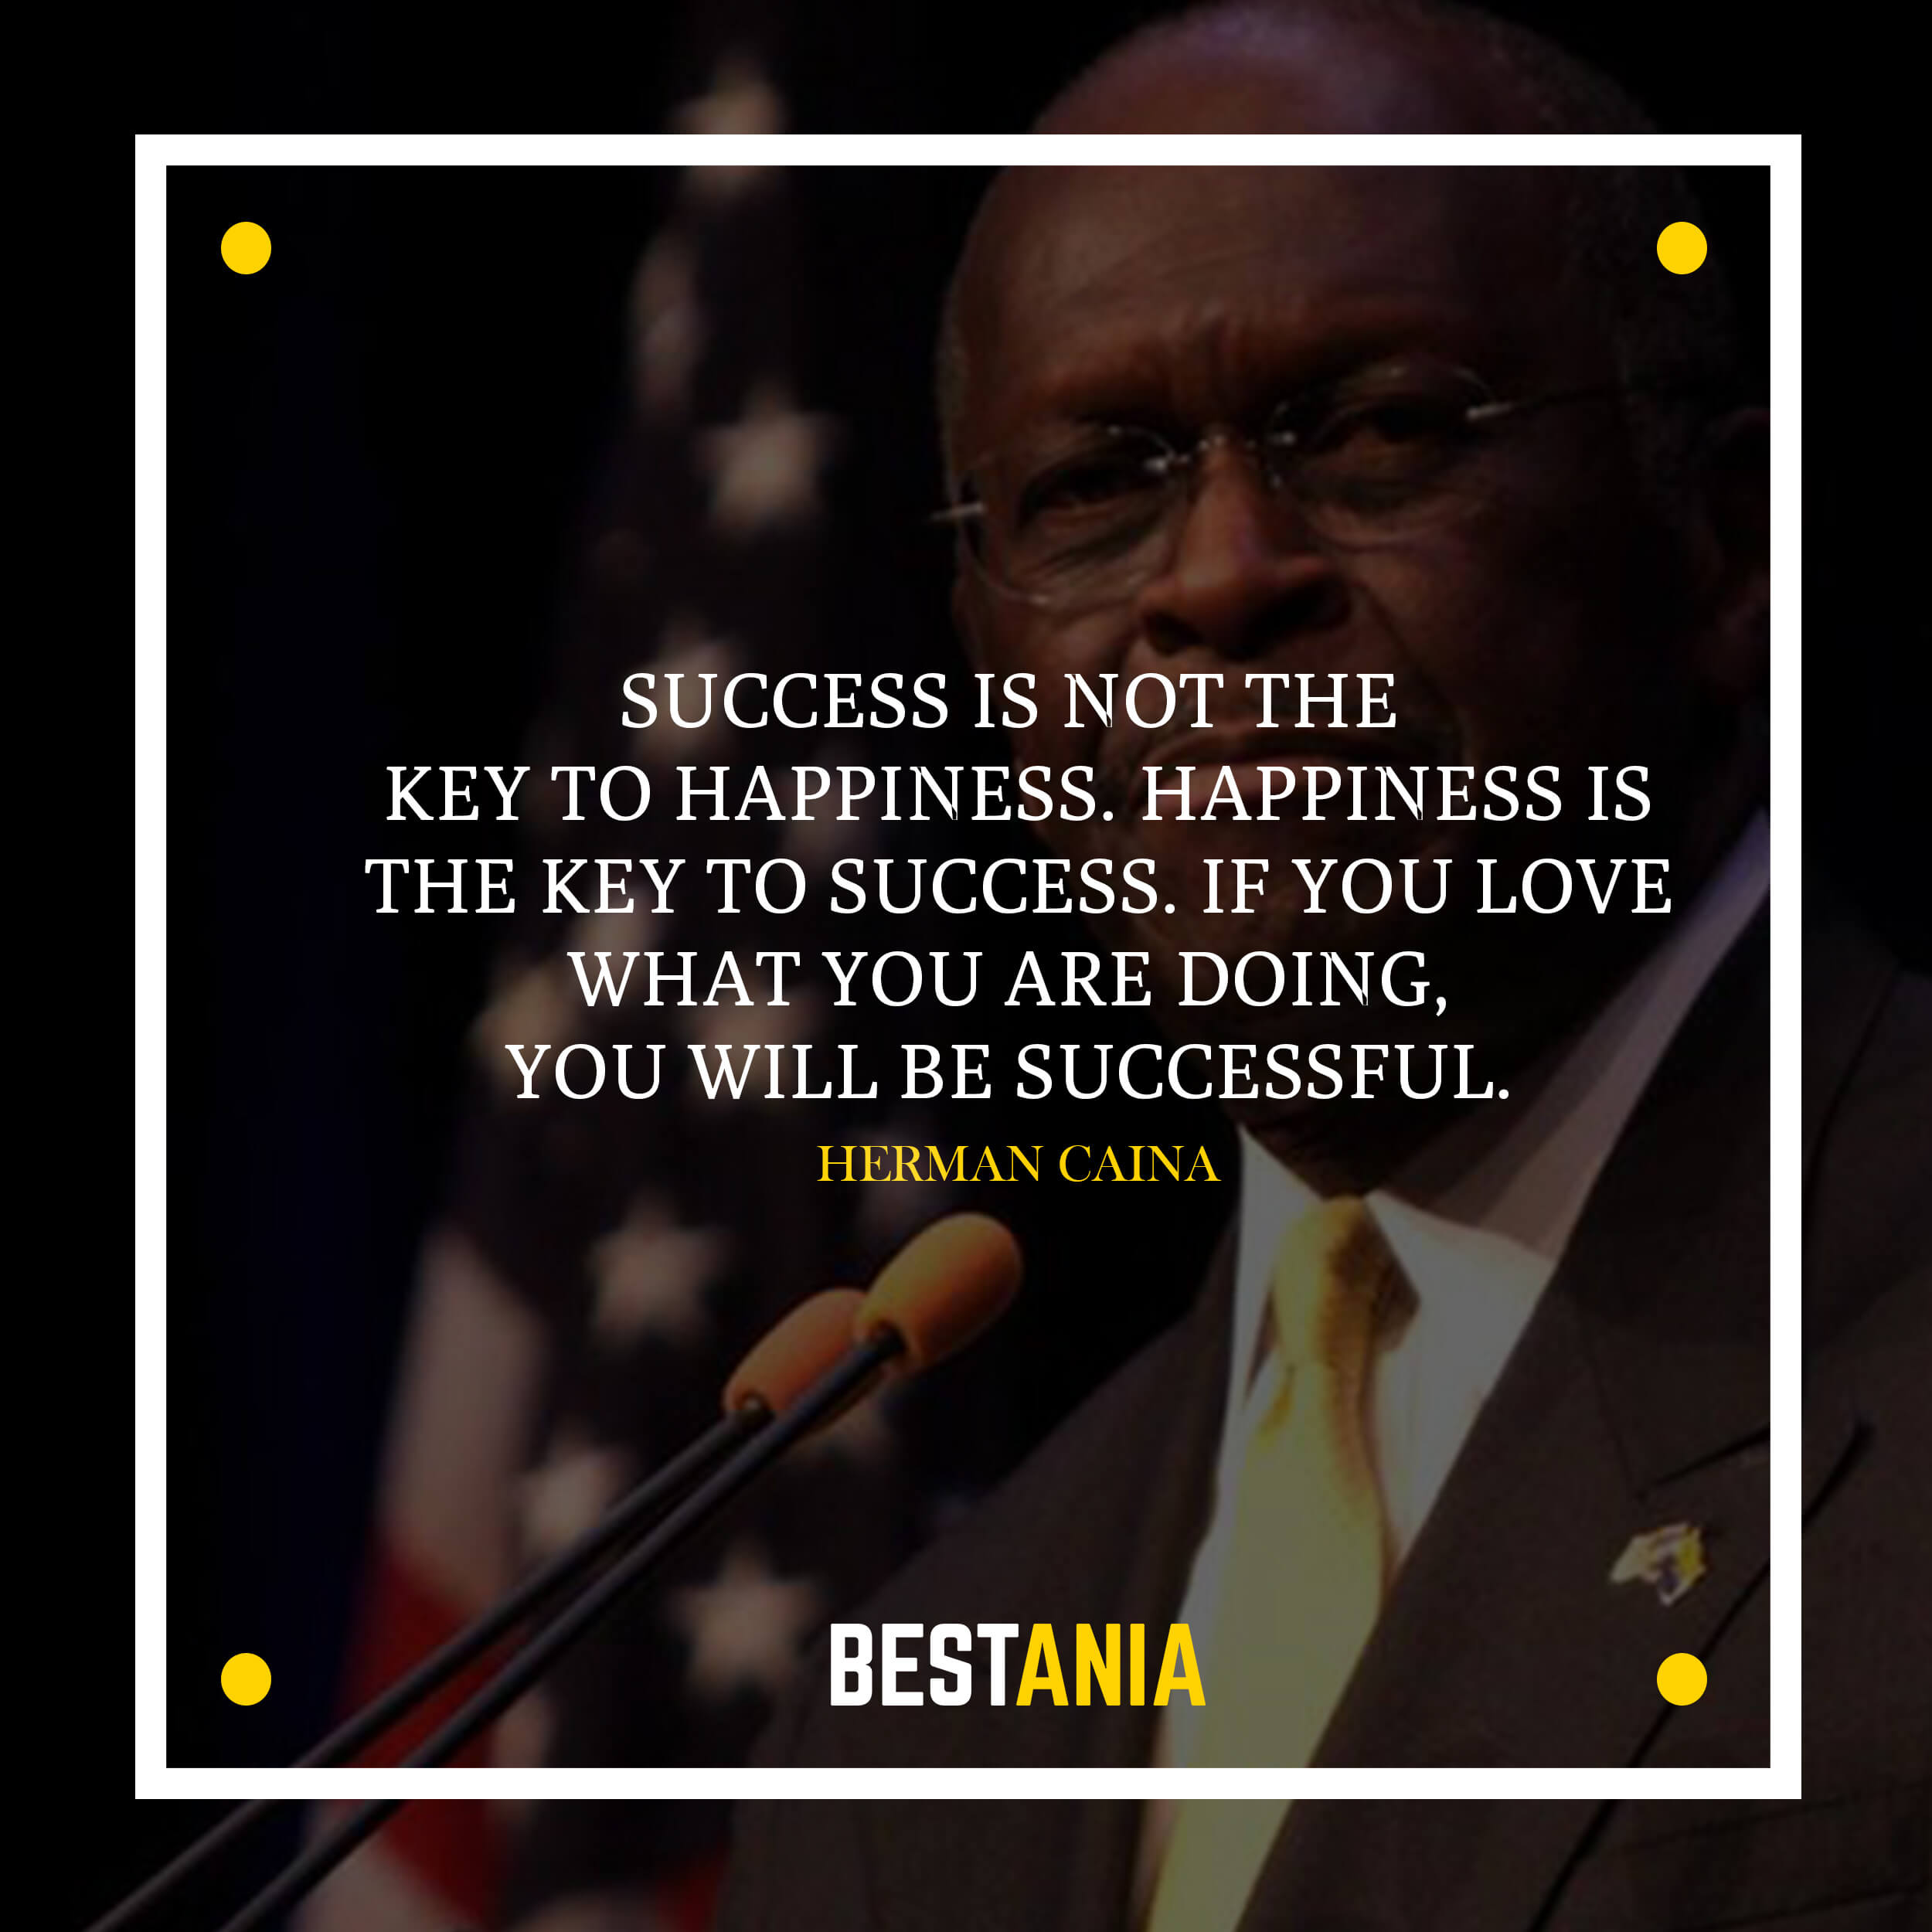 Success is not the key to happiness. Happiness is the key to success. If you love what you are doing, you will be successful. – Herman Cain